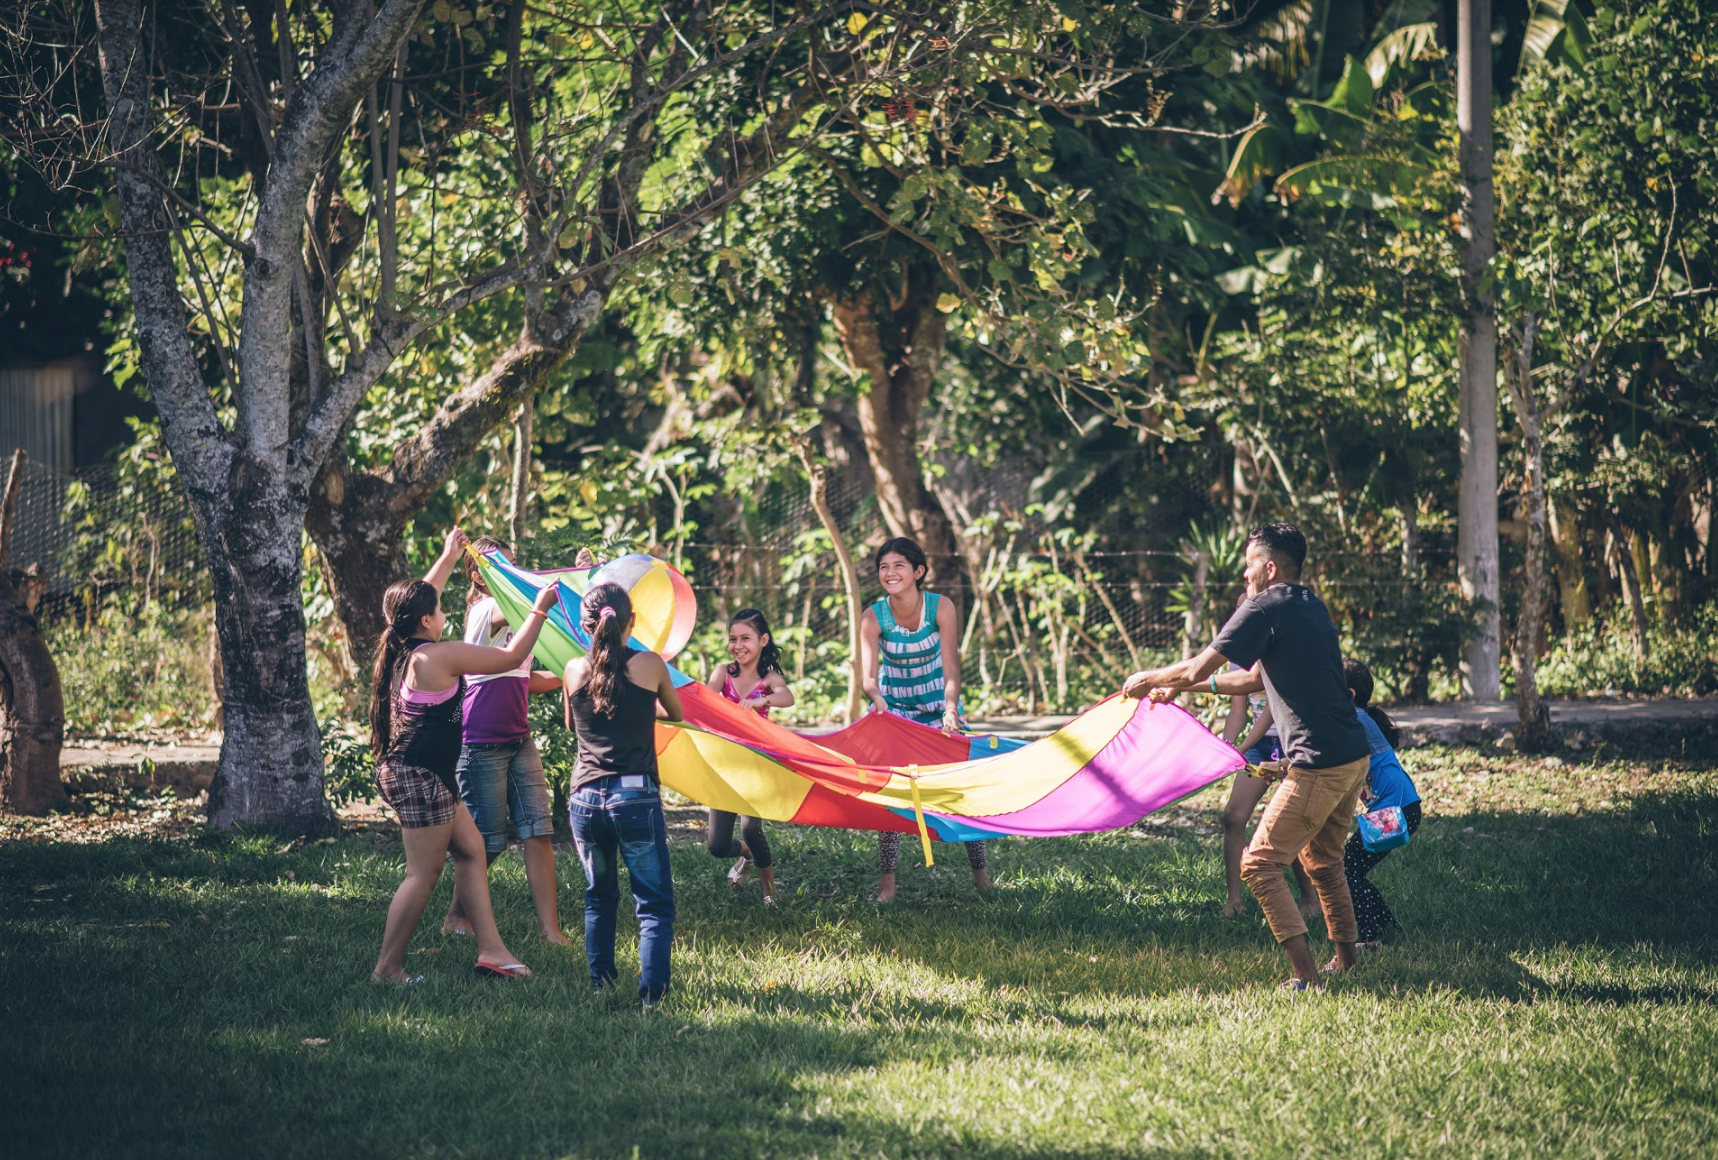 In El Salvador, families gather on our campus for games, food and celebration. We're grateful for scenes like this, where children can play in safety, and for the part you play in making it happen.